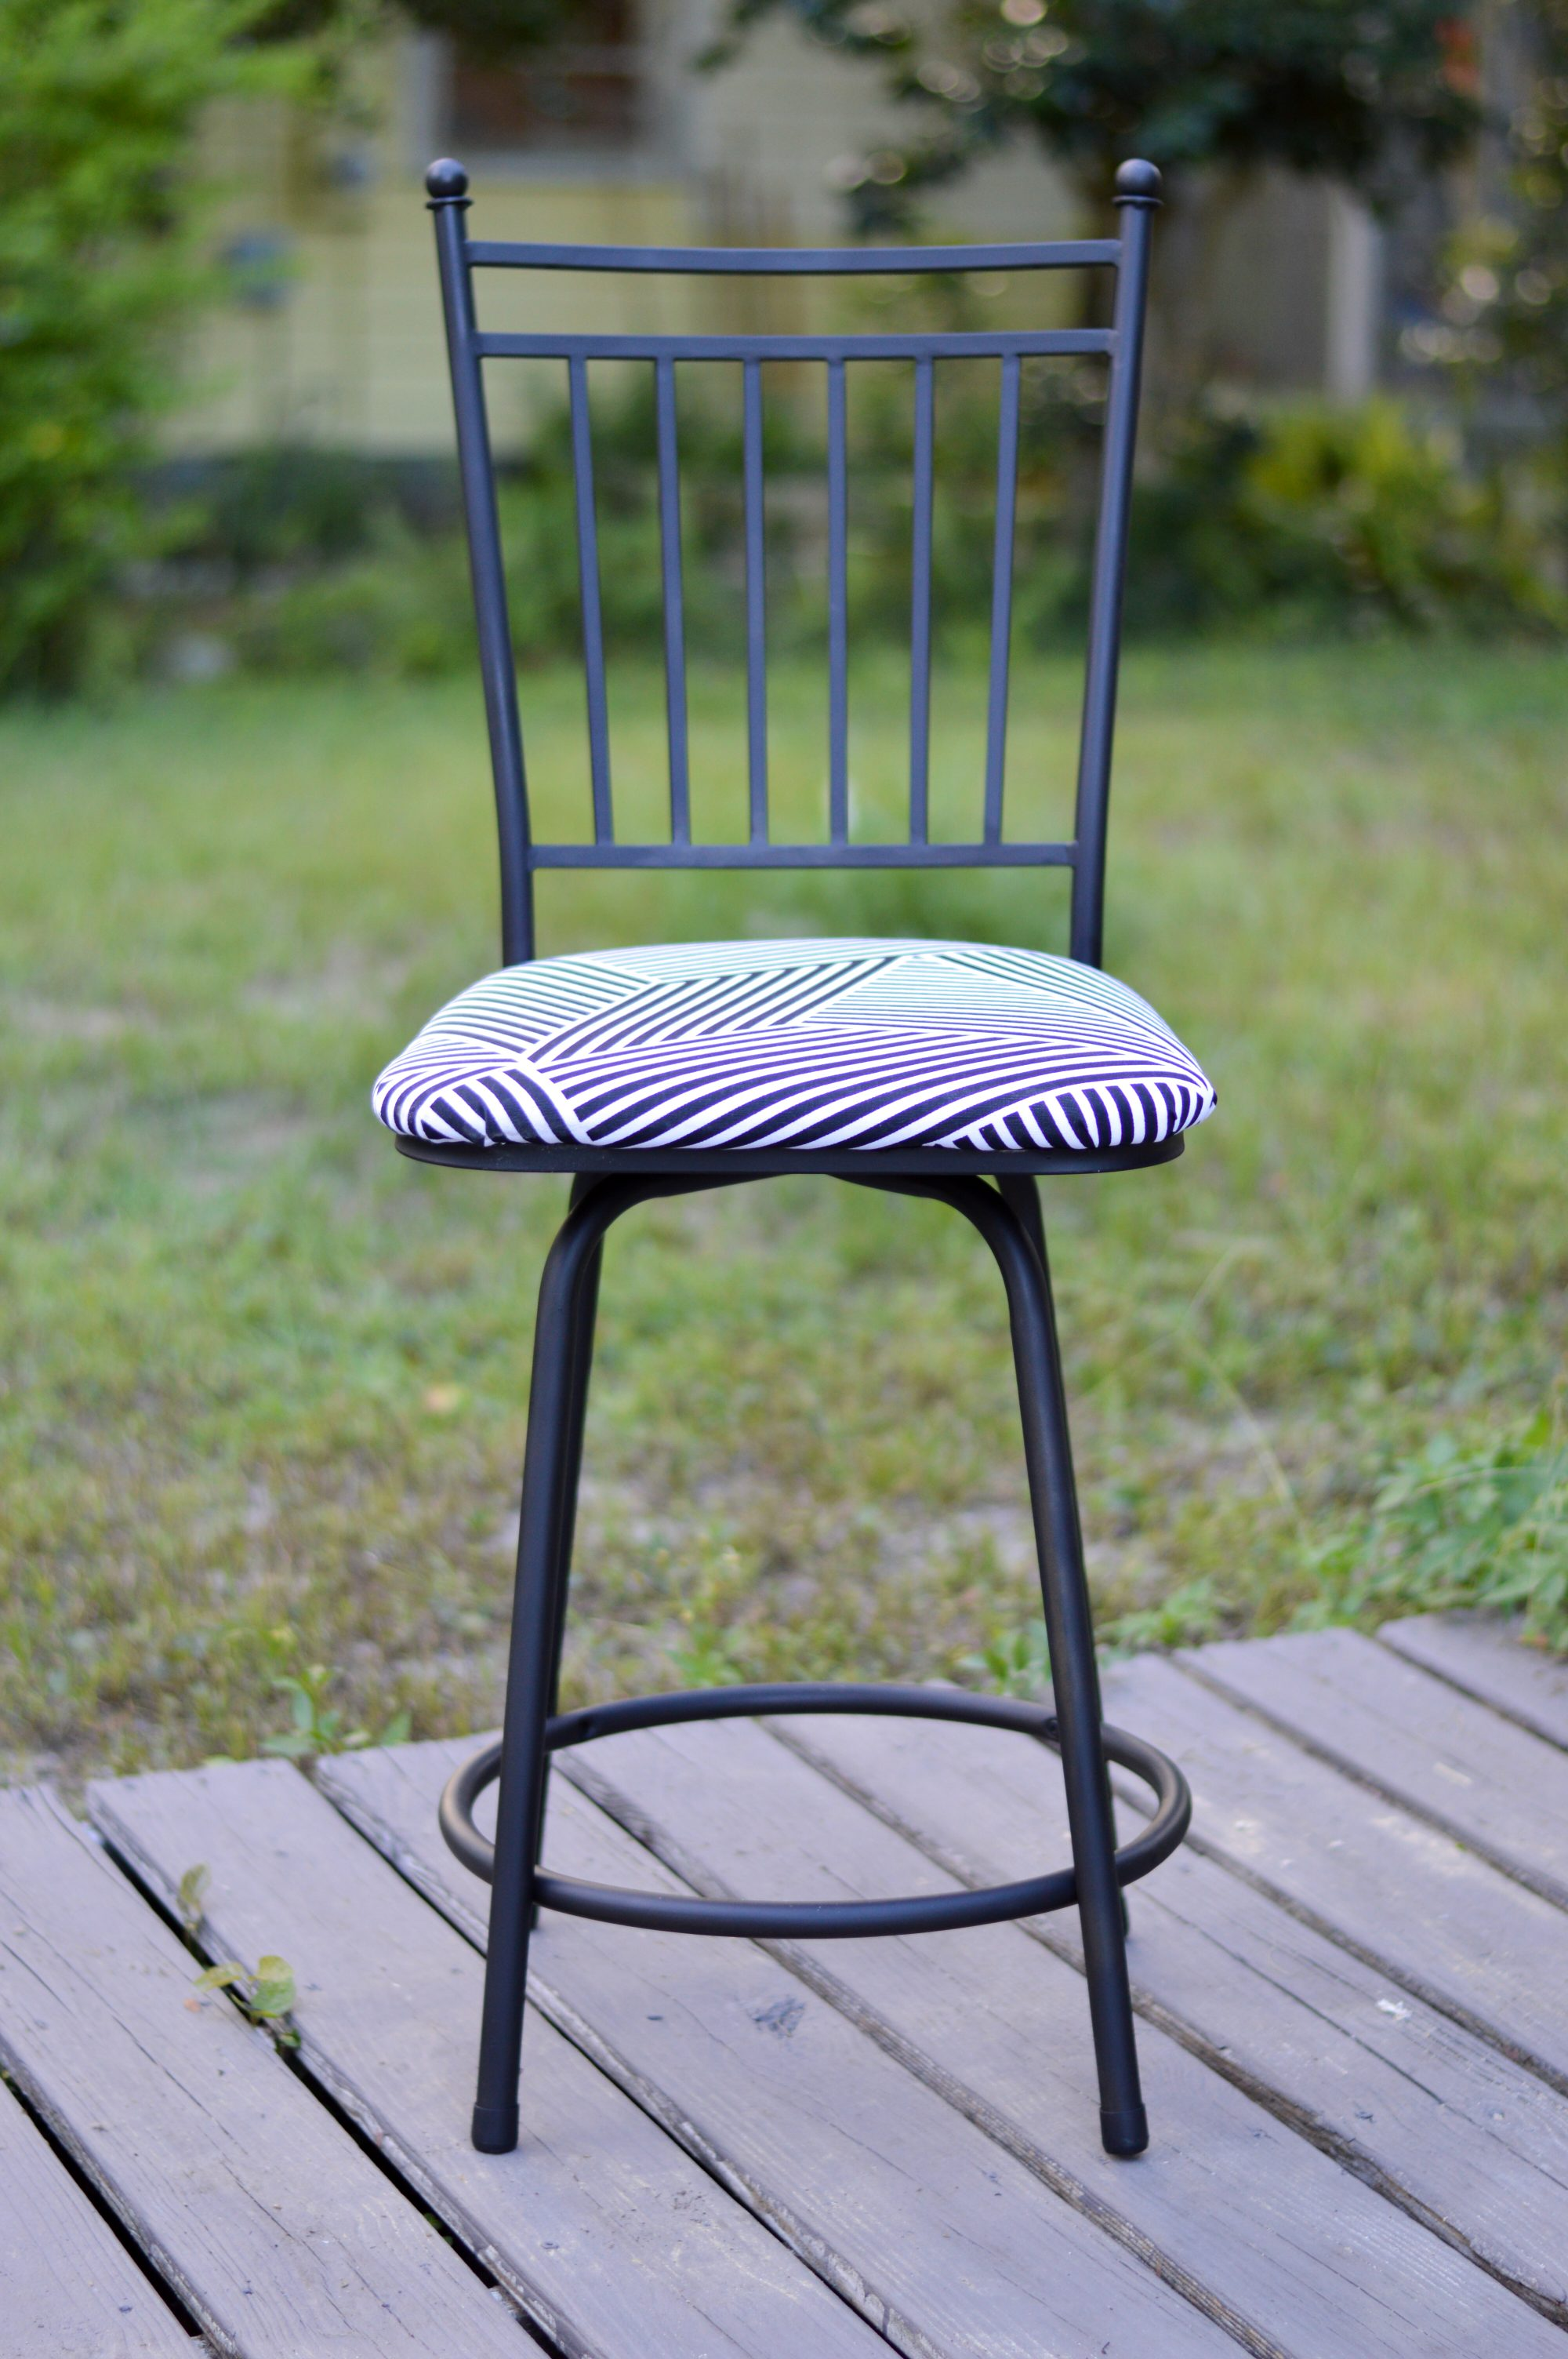 how to reupholster a chair cushion corner old school lawn chairs diy turn your barstools from drab fab styelled